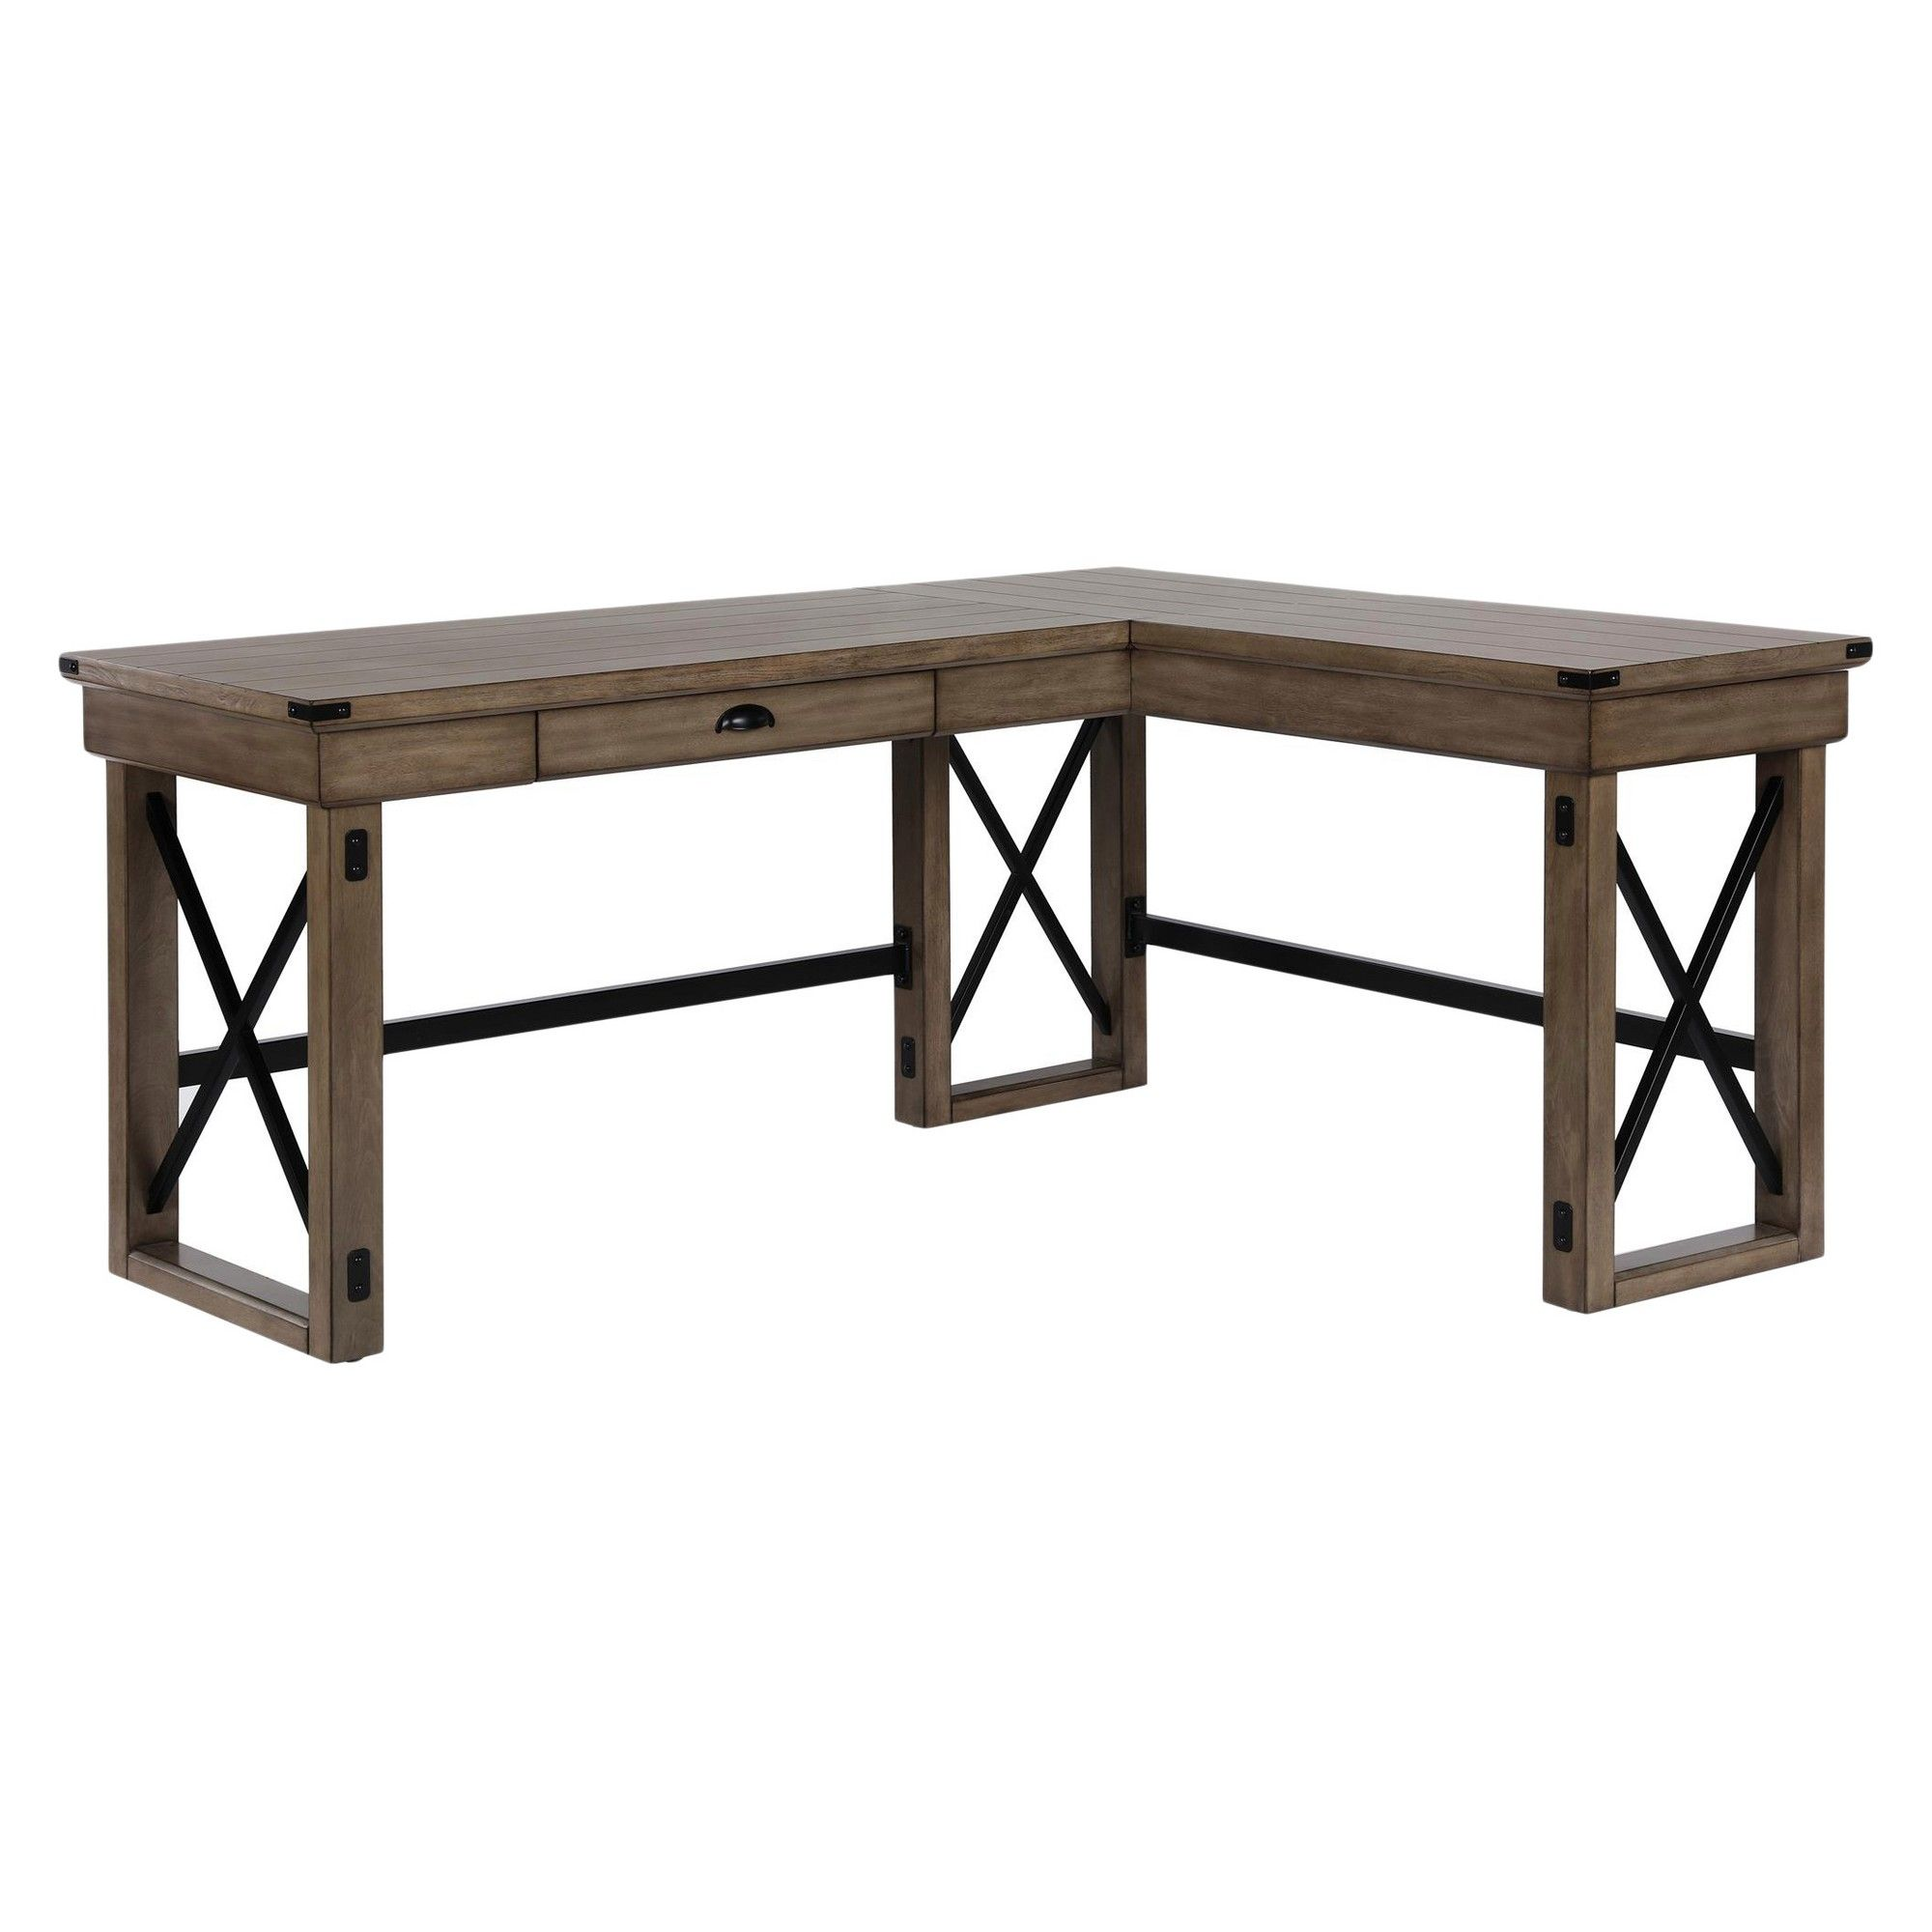 Marvelous Hathaway L Shaped Desk With Lift Top Rustic Gray Room Interior Design Ideas Jittwwsoteloinfo